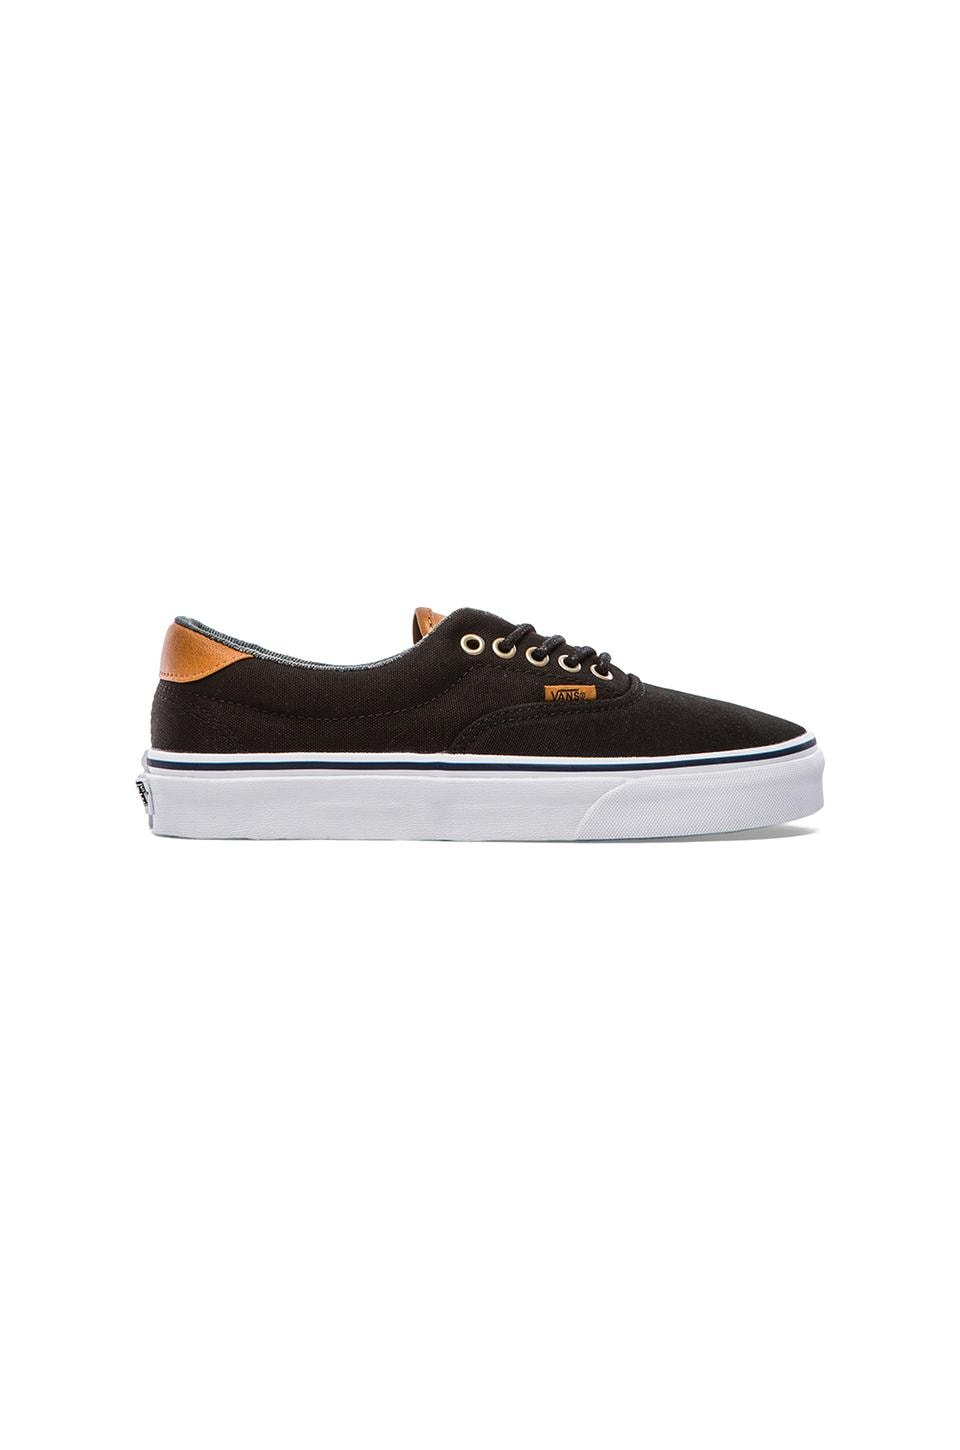 Vans Era 59 in Black & Washed